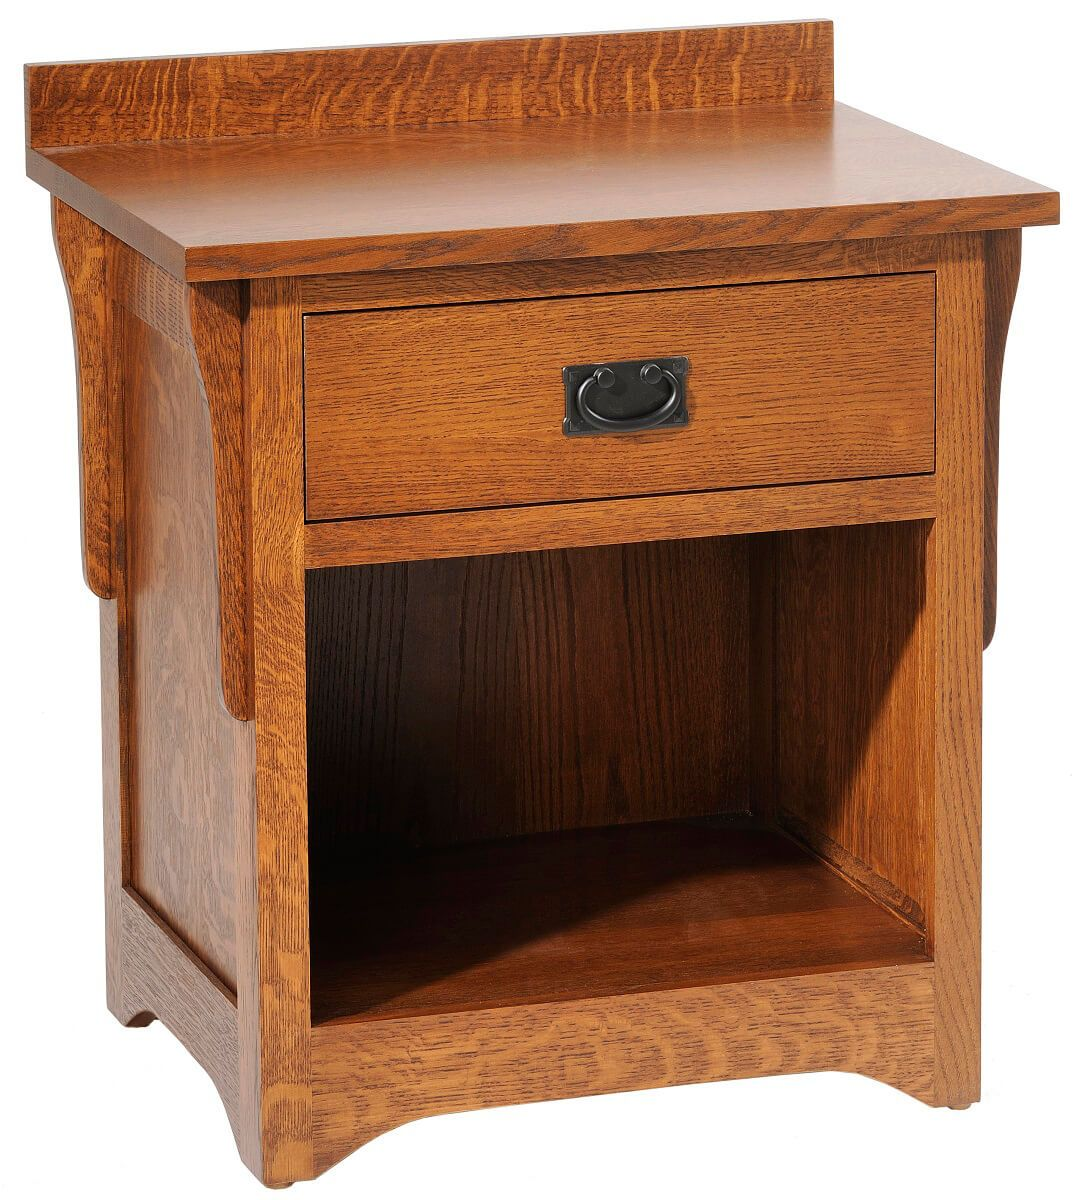 Barcelona Mission Oak Nightstand